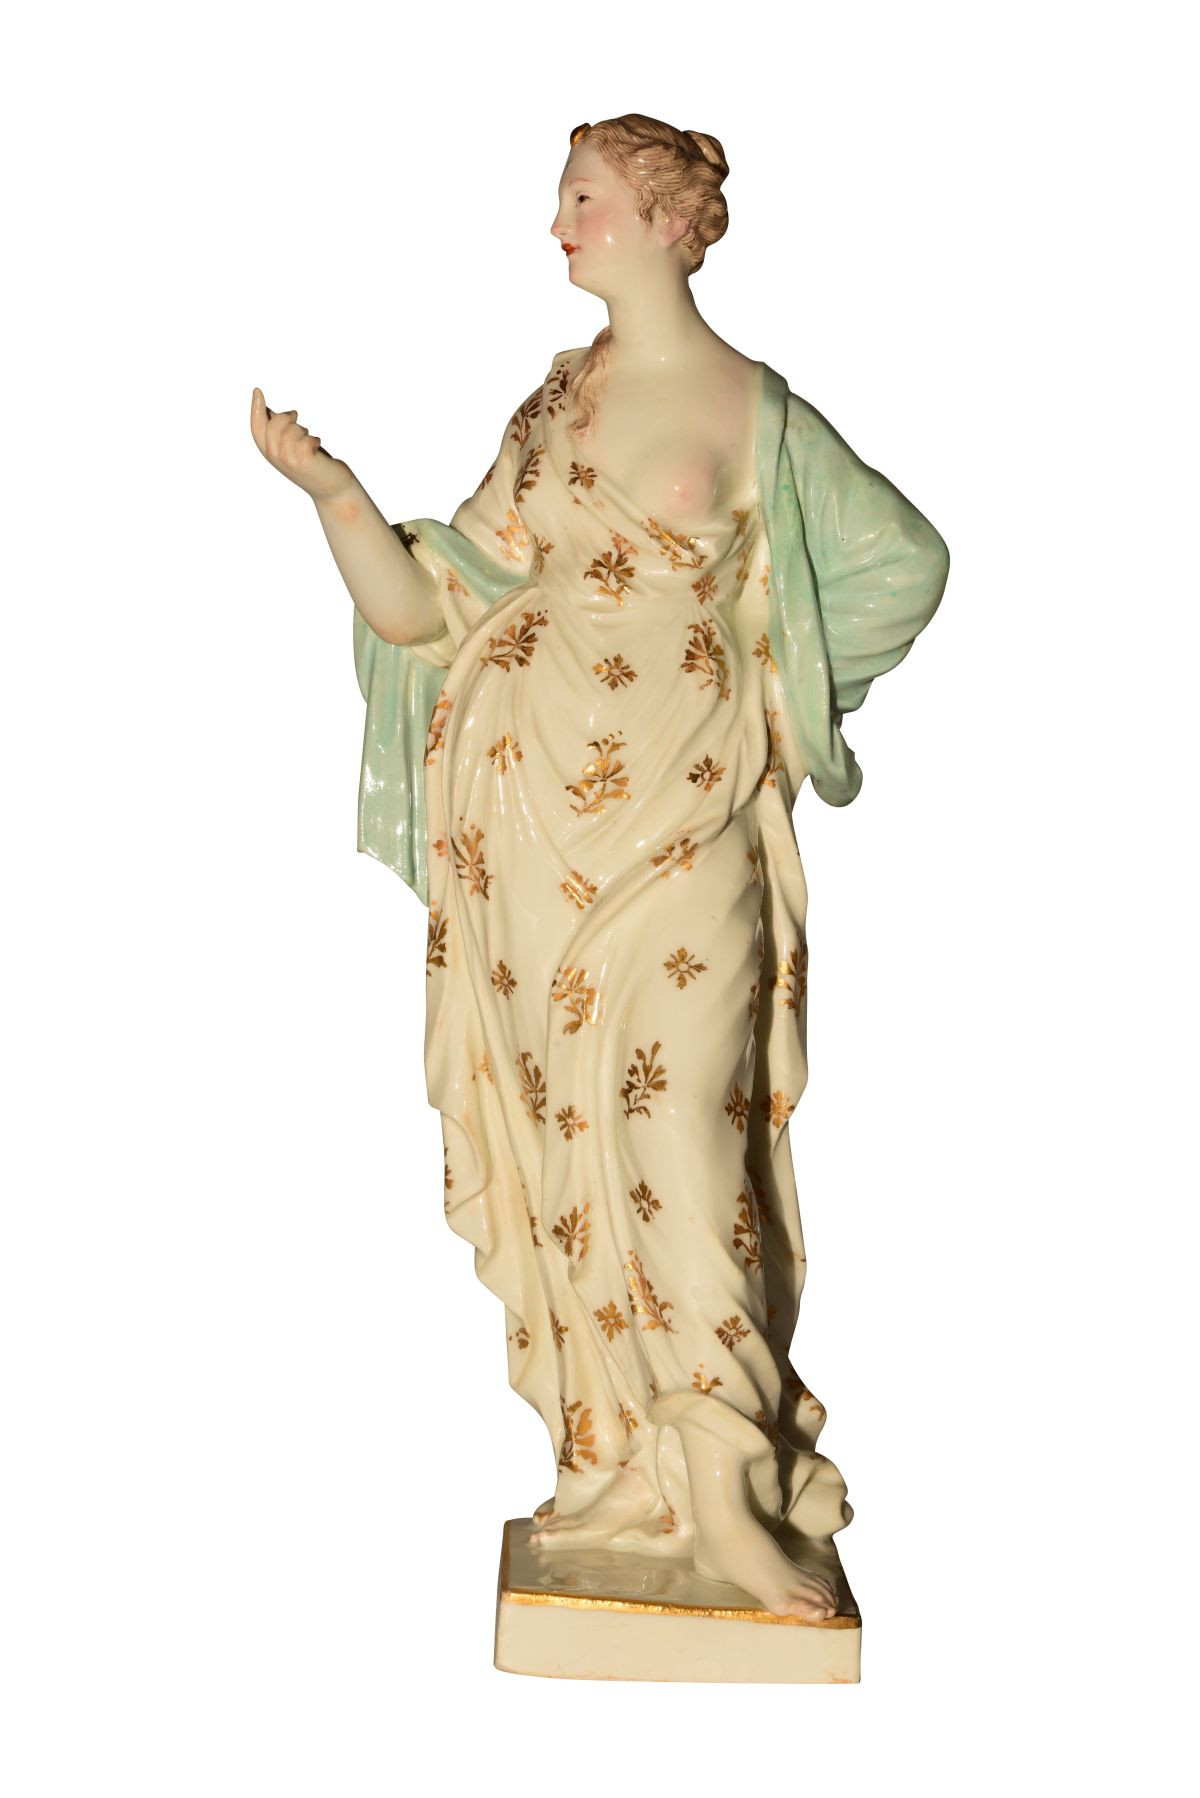 #117 Greek goddess Meissen 1760 | Image